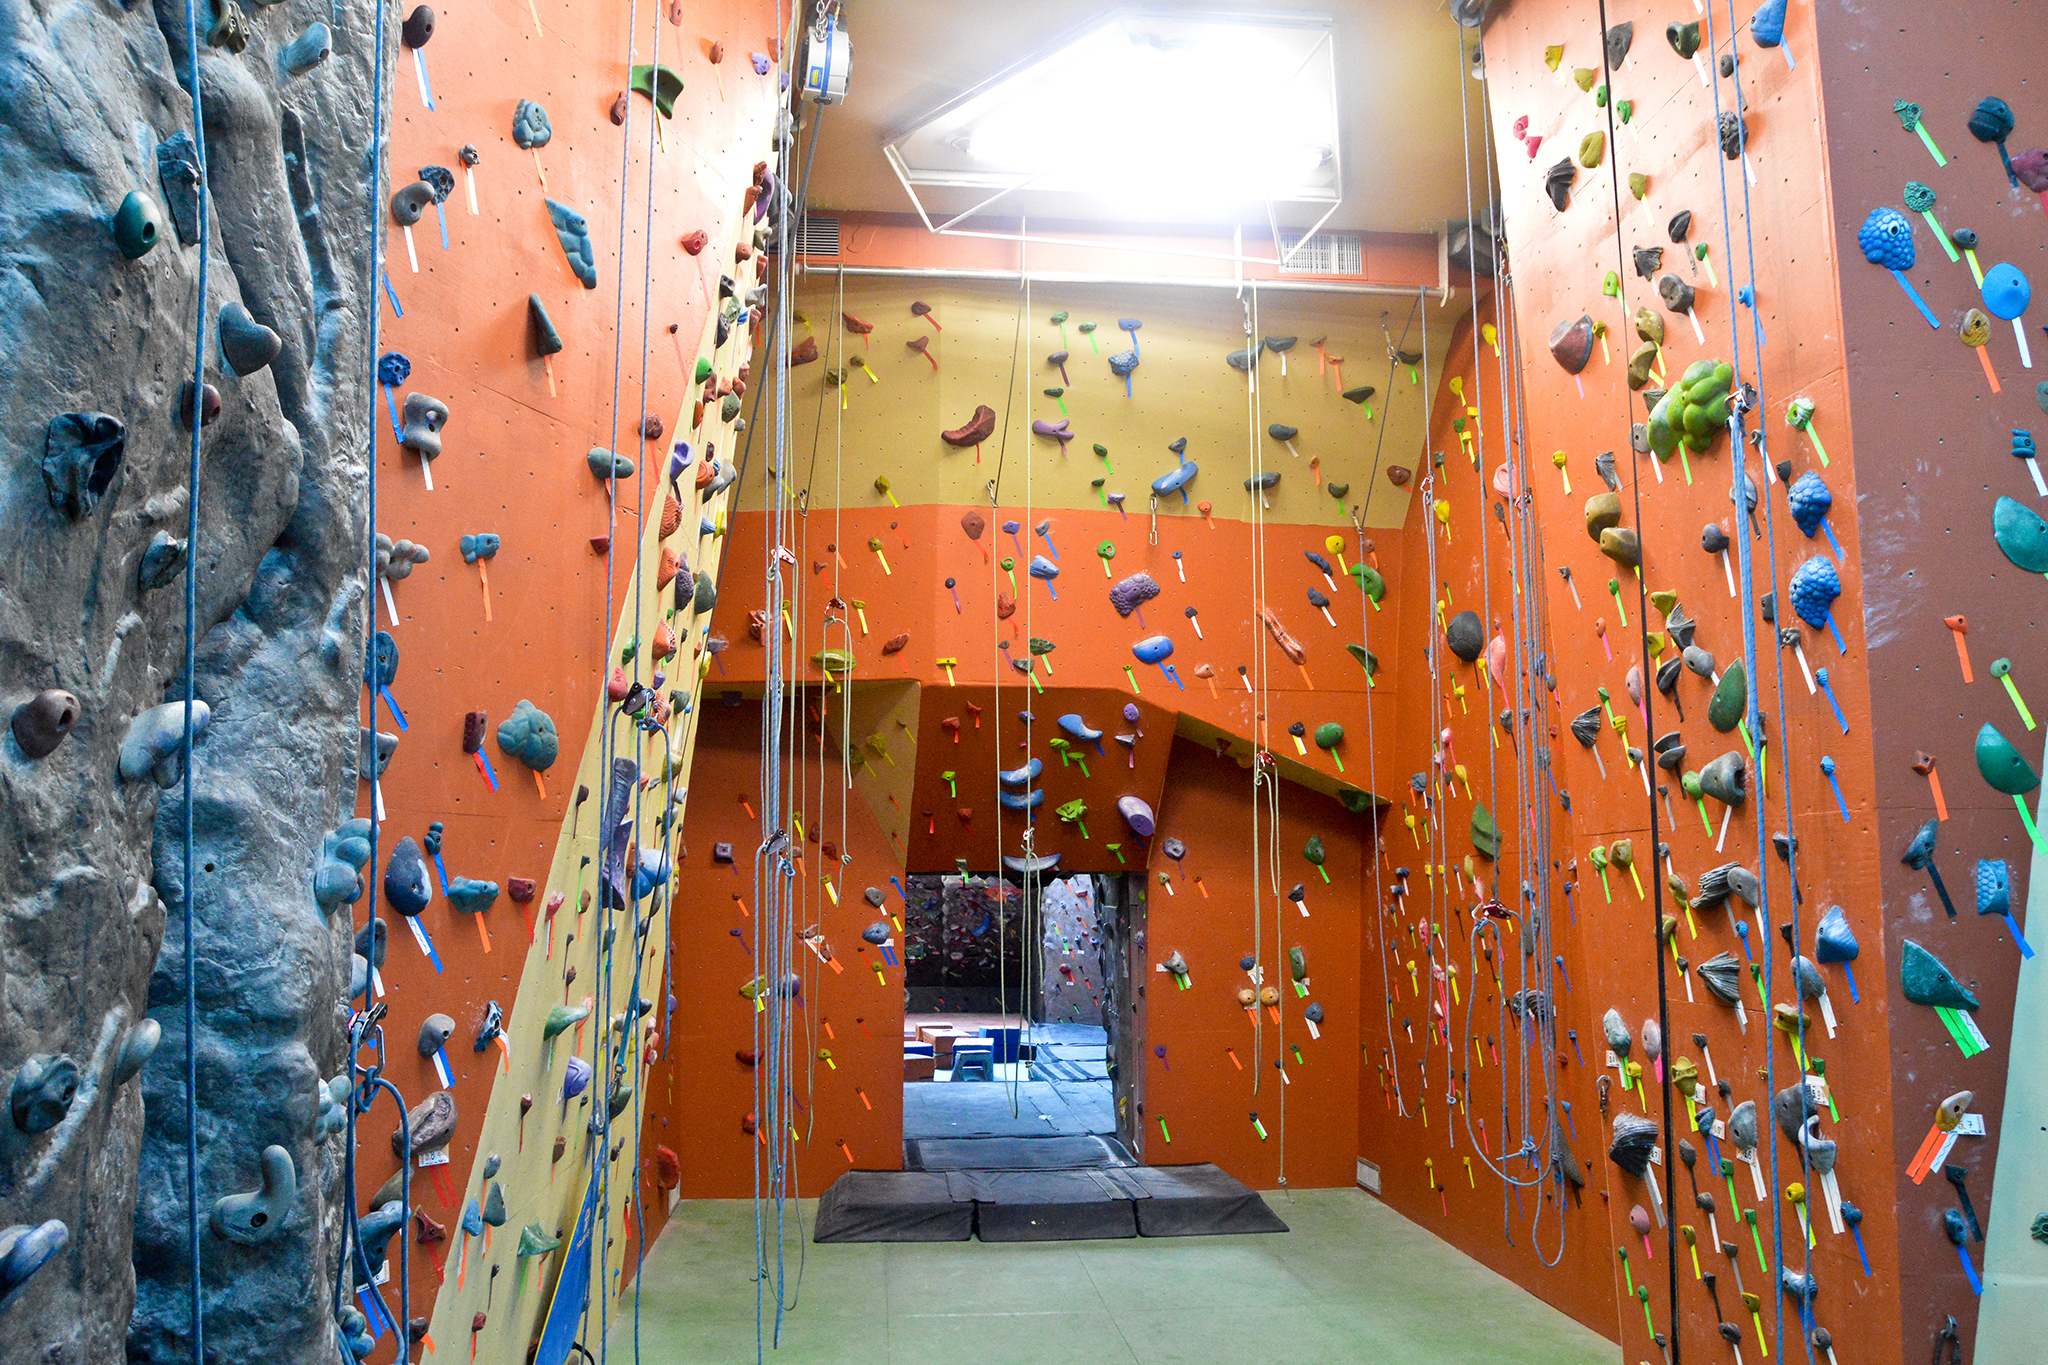 Best places to go outdoor or indoor rock climbing in nyc for Places to see in nyc at night